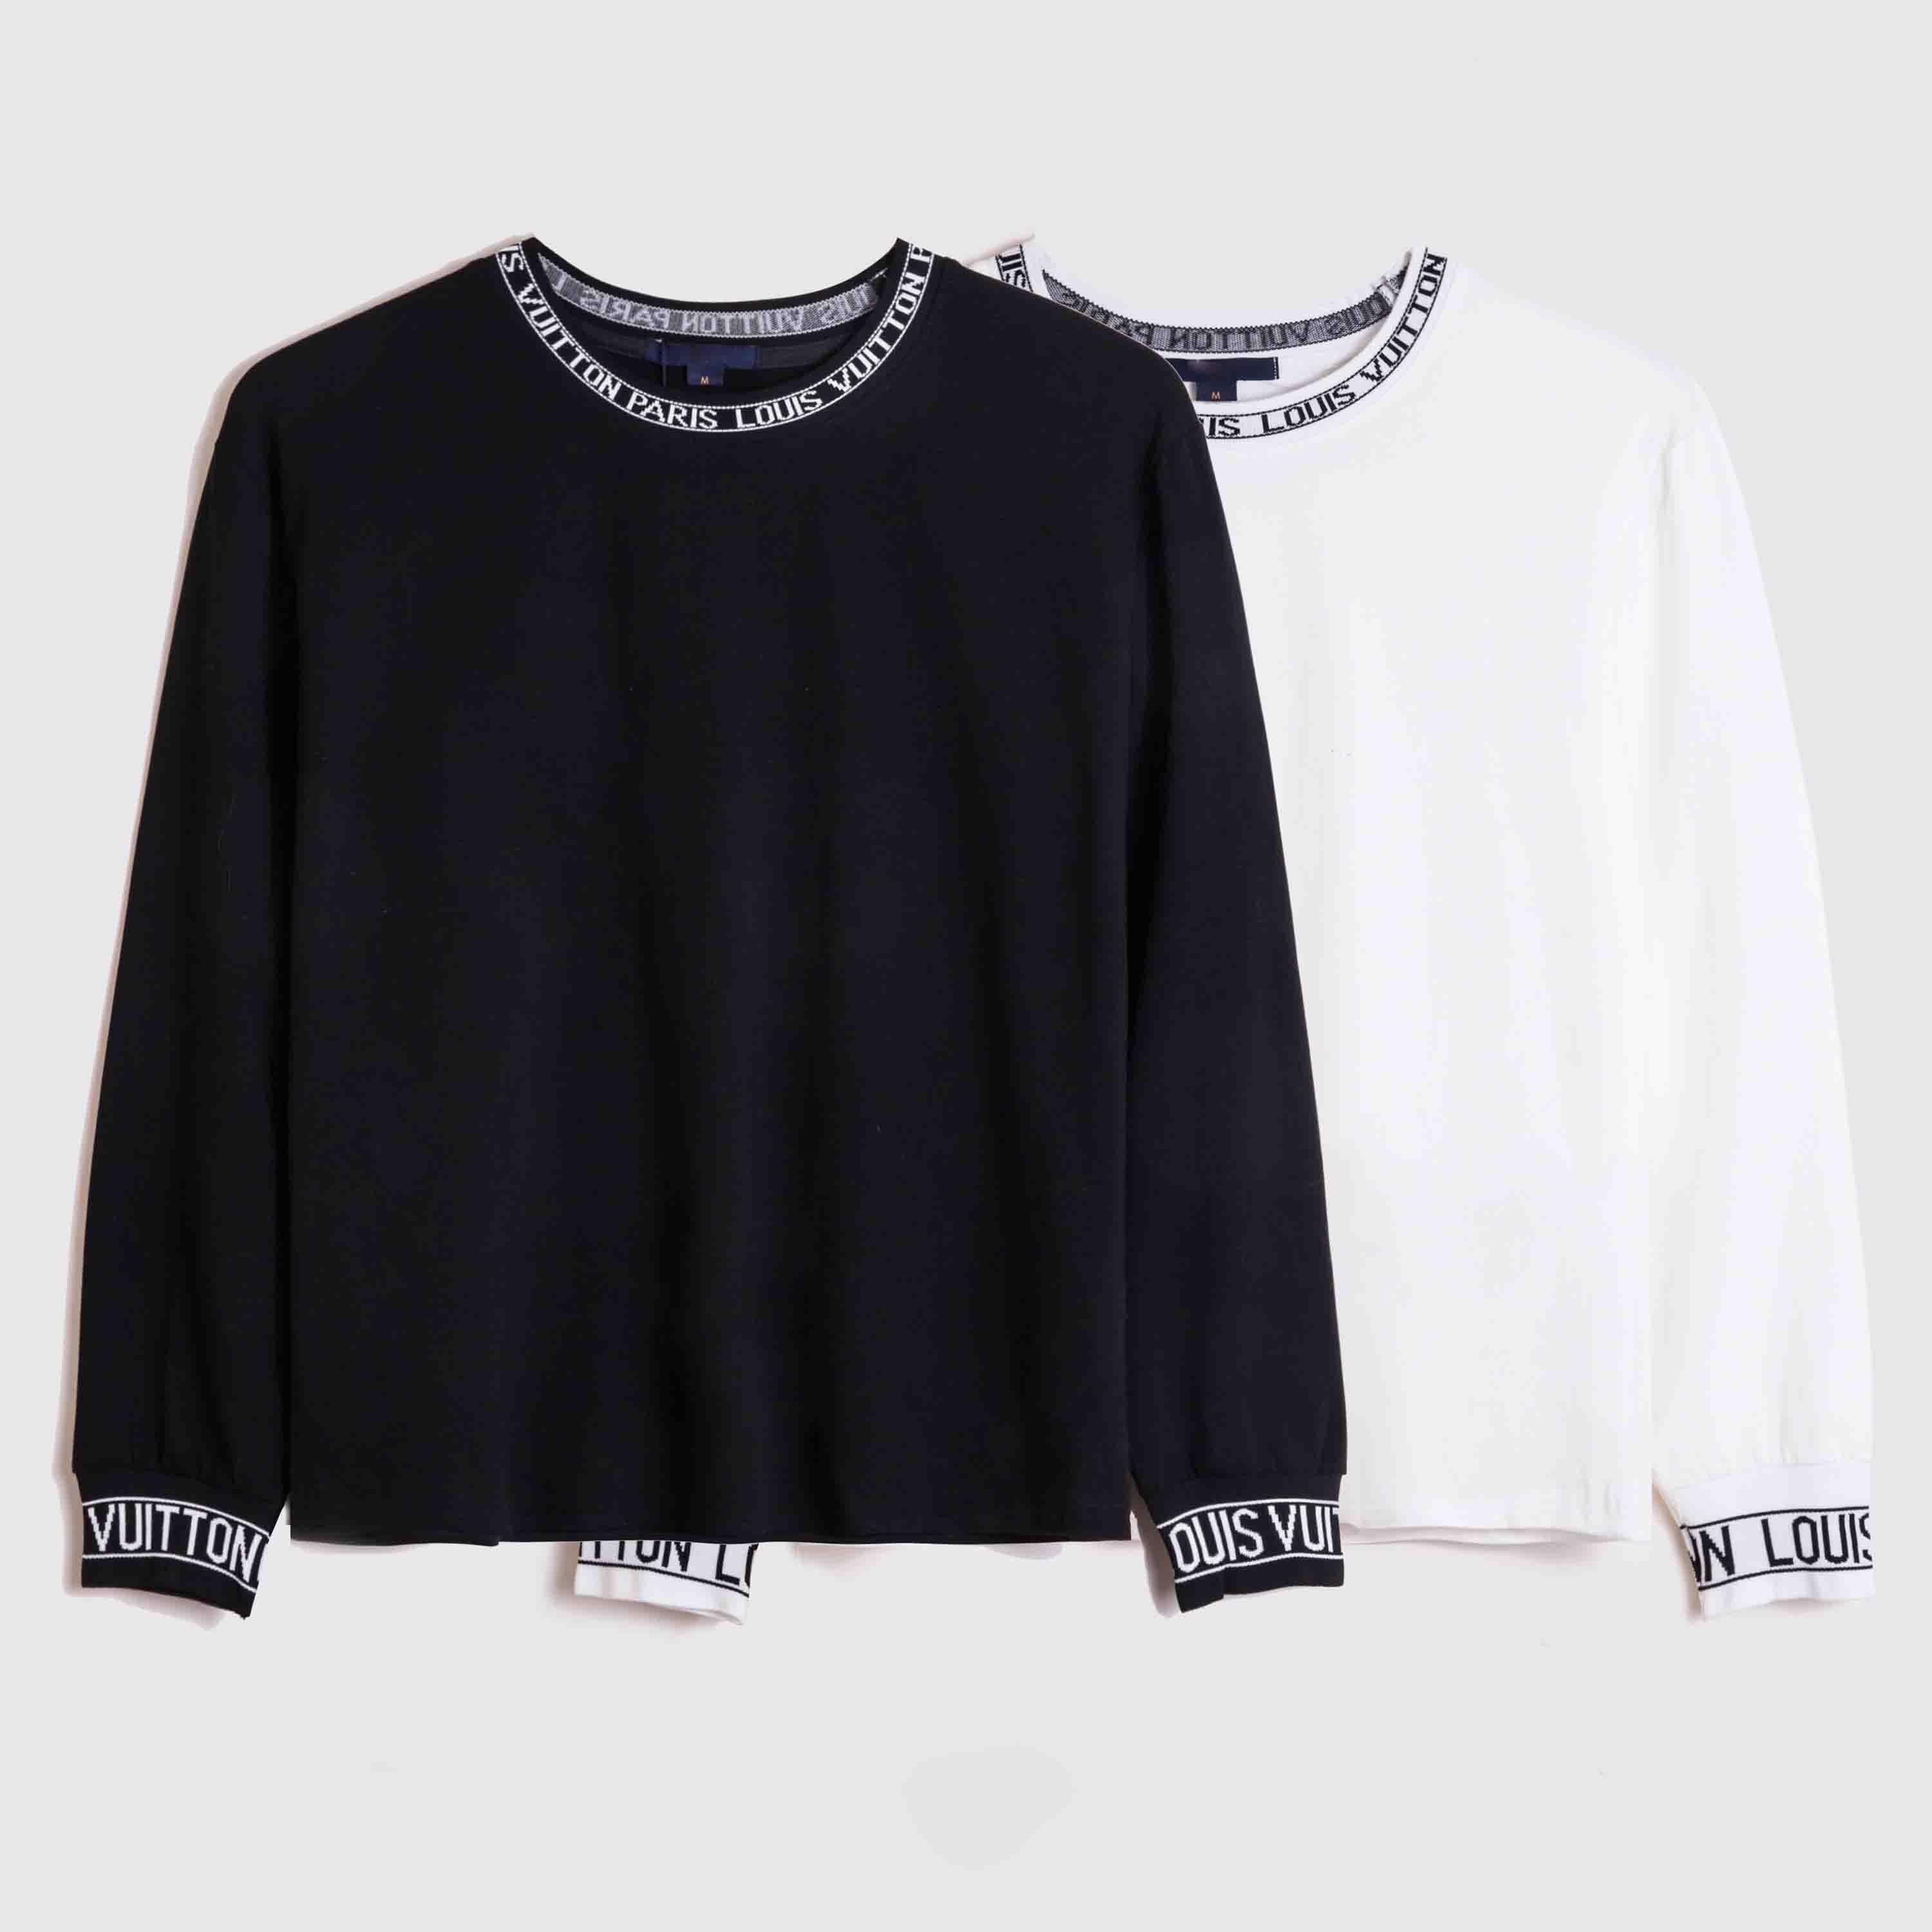 20ss Men's Sweater Fashion Men's Women's High Quality Sweater Pullover Long Sleeve Letter Print Sweater Size M-XXL